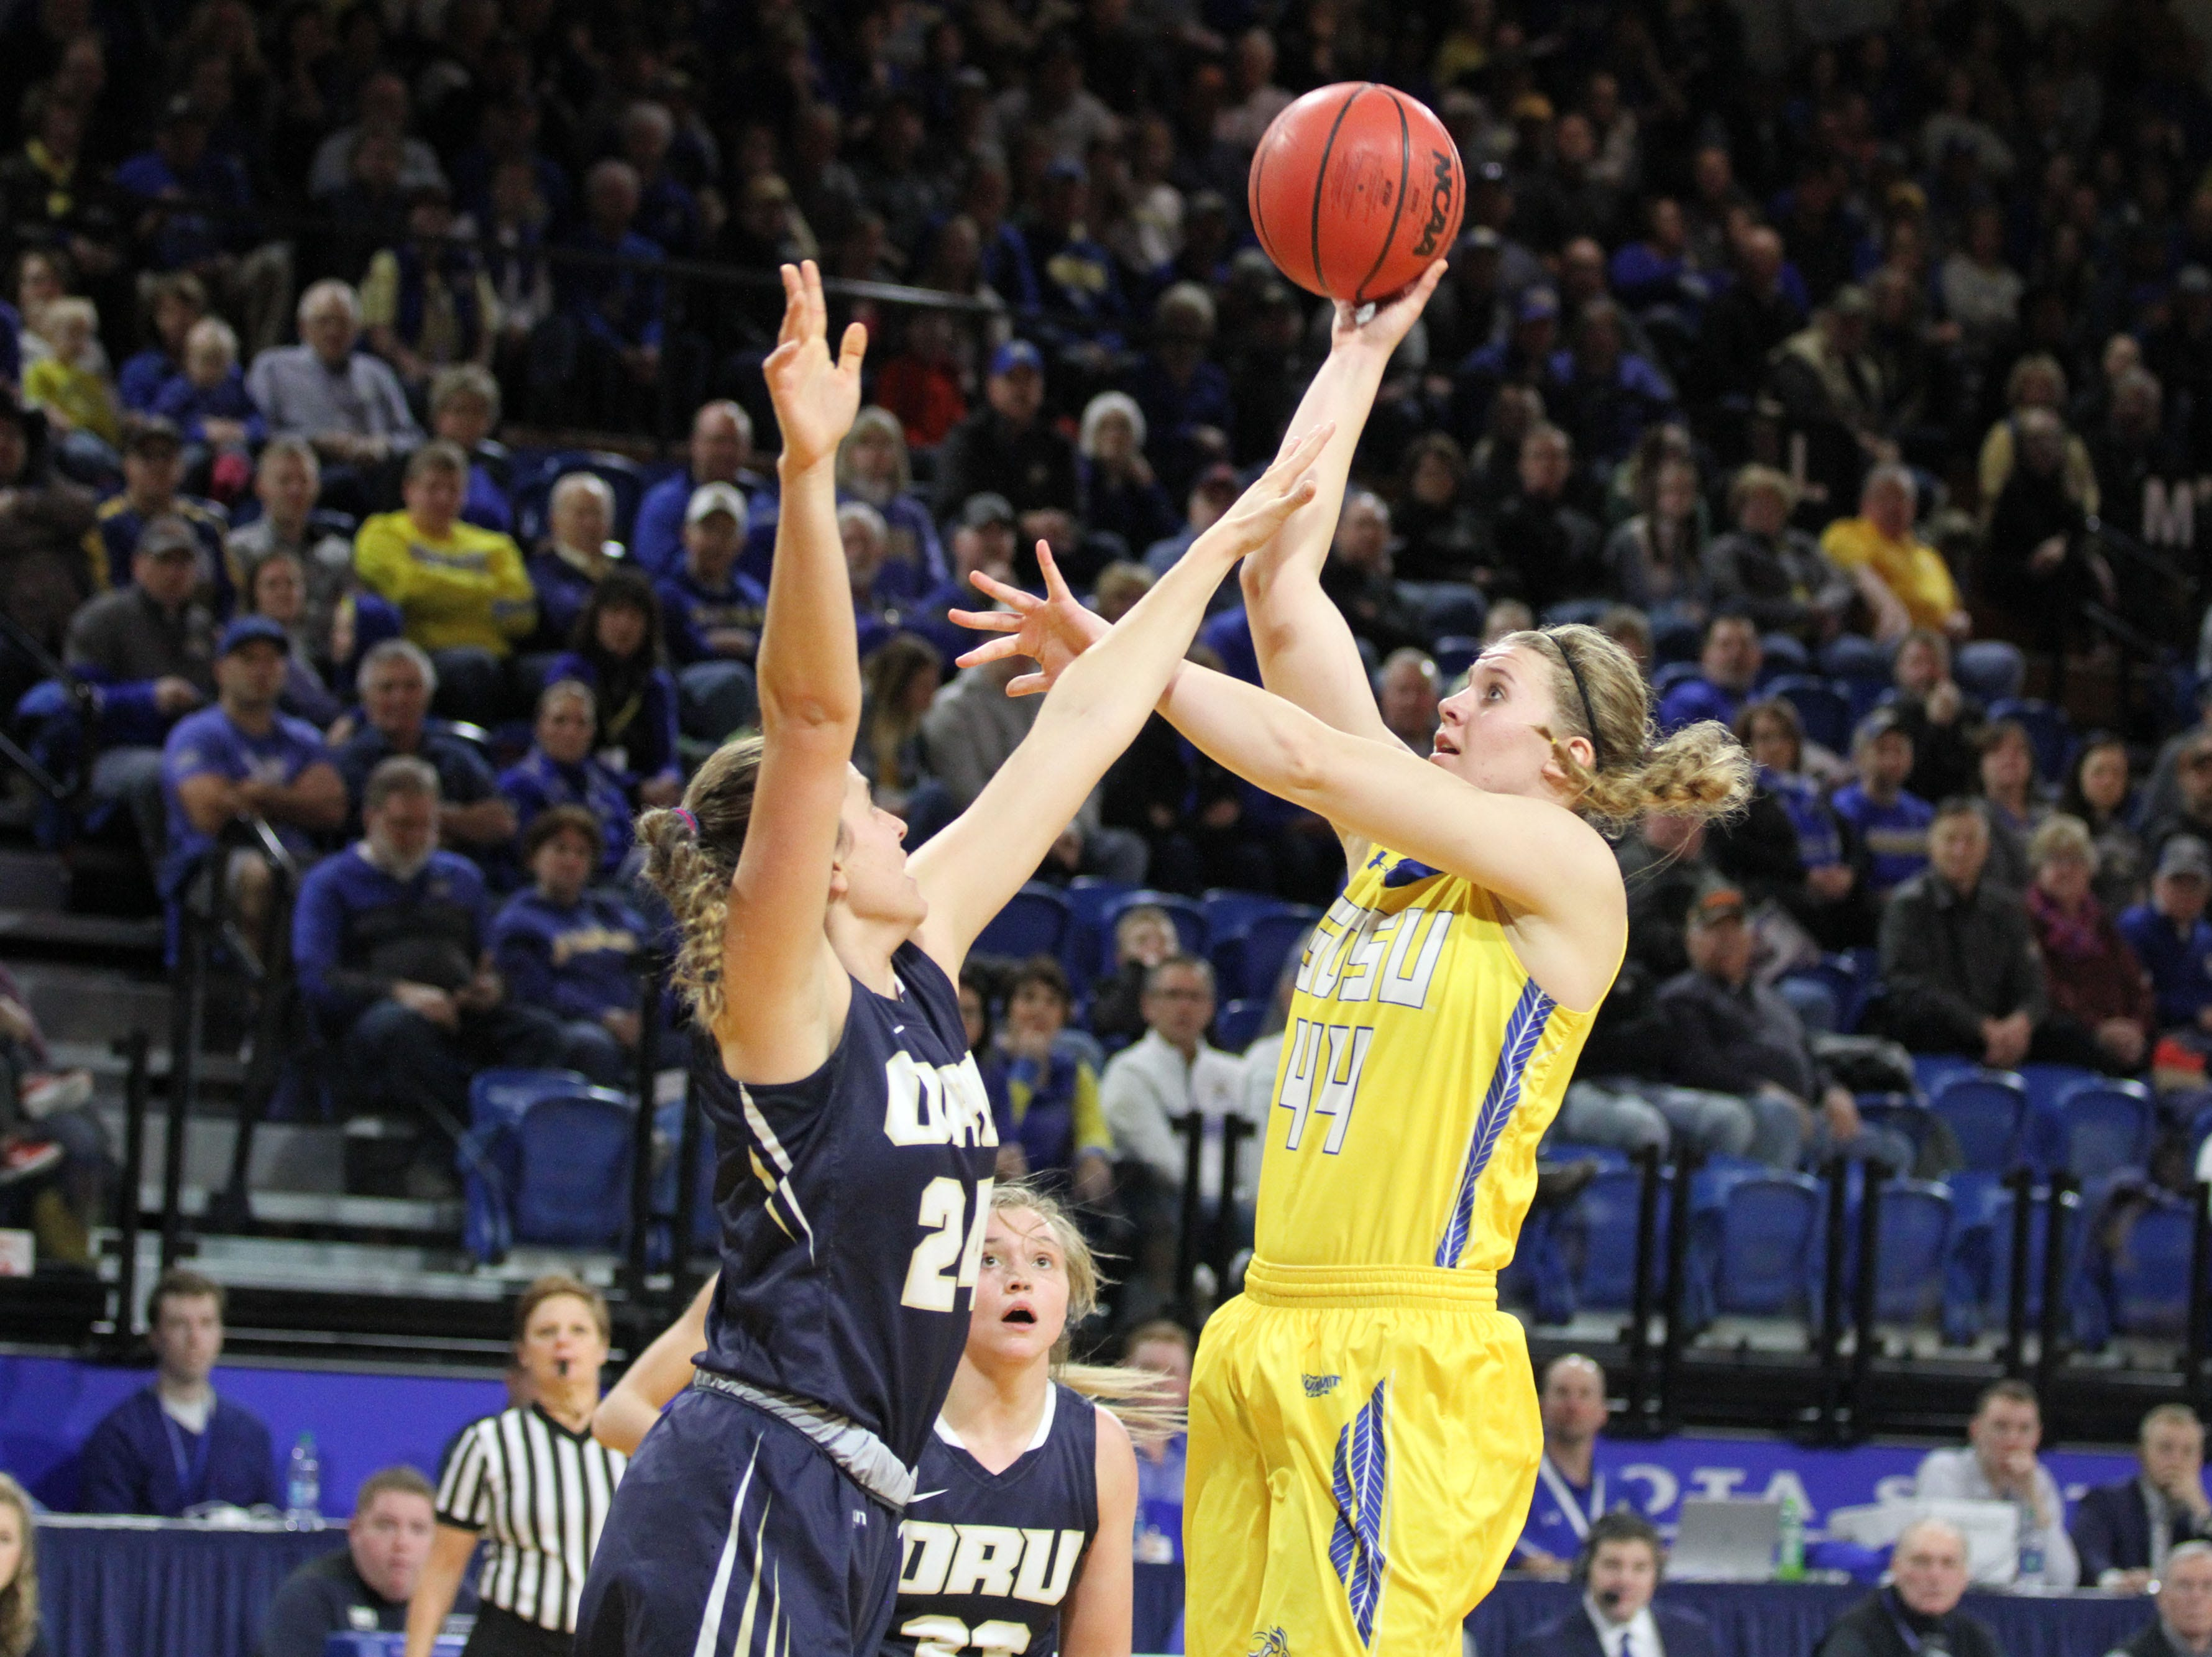 South Dakota State's Myah Selland (44) scores on a jumper over Oral Roberts' Montserrat Brotons during the second quarter of the Jackrabbits' matchup against the Golden Eagles Saturday afternoon at Frost Arena in Brookings.